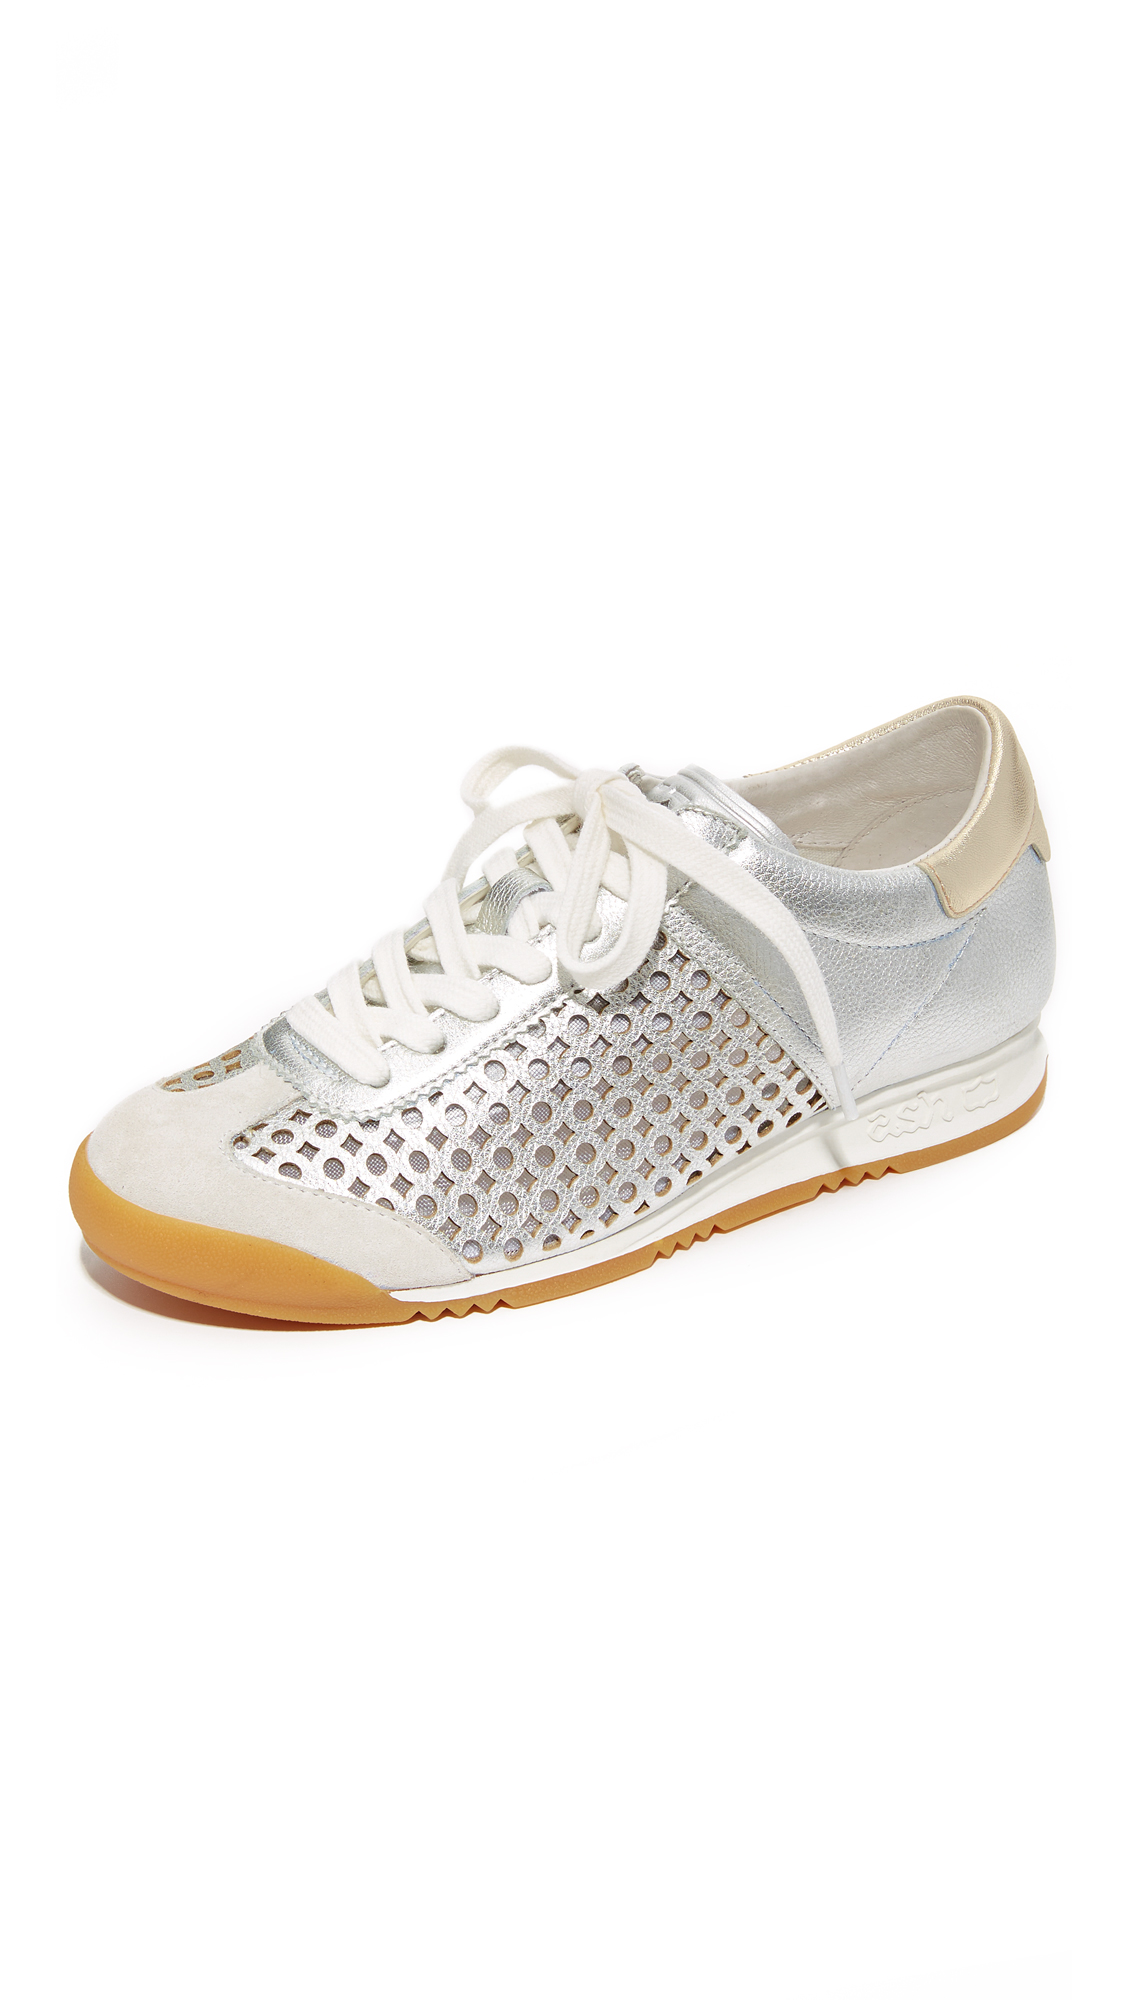 Ash Spin Sneakers - Off White/Silver at Shopbop